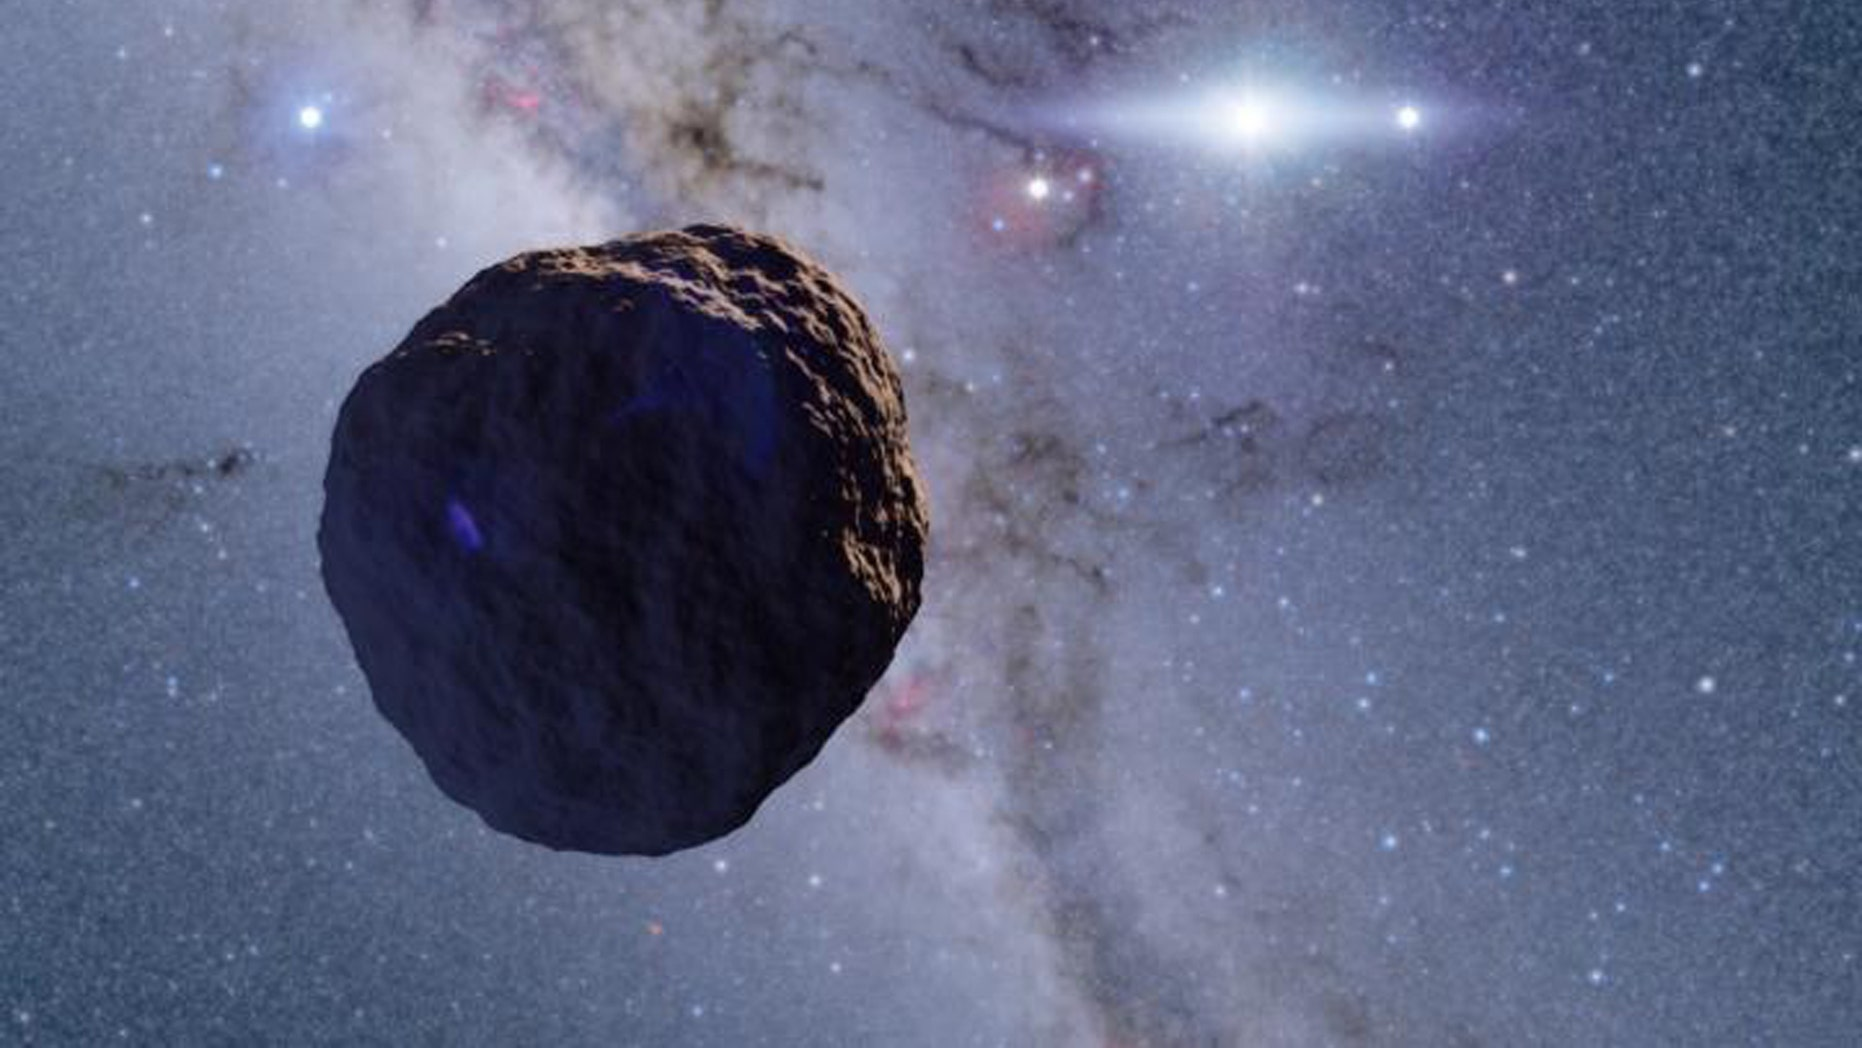 Kilometer-sized Kuiper belt object provides missing link in planetary evolution